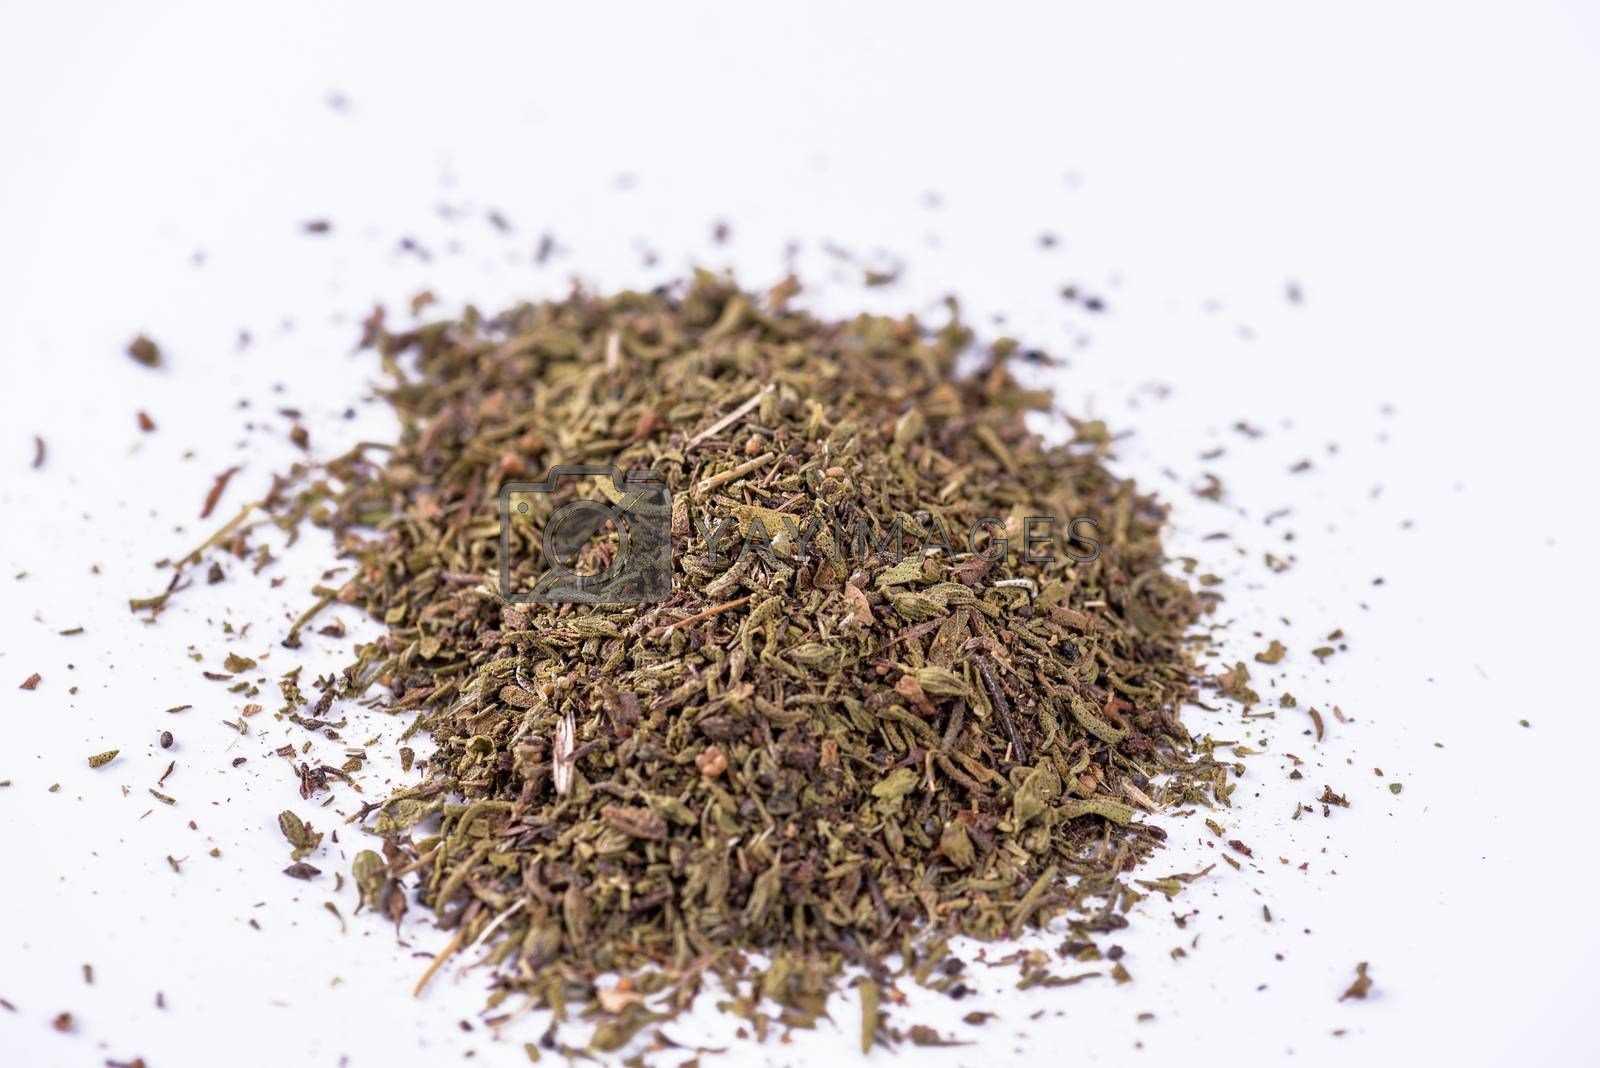 Mixed dried herbs on white background.